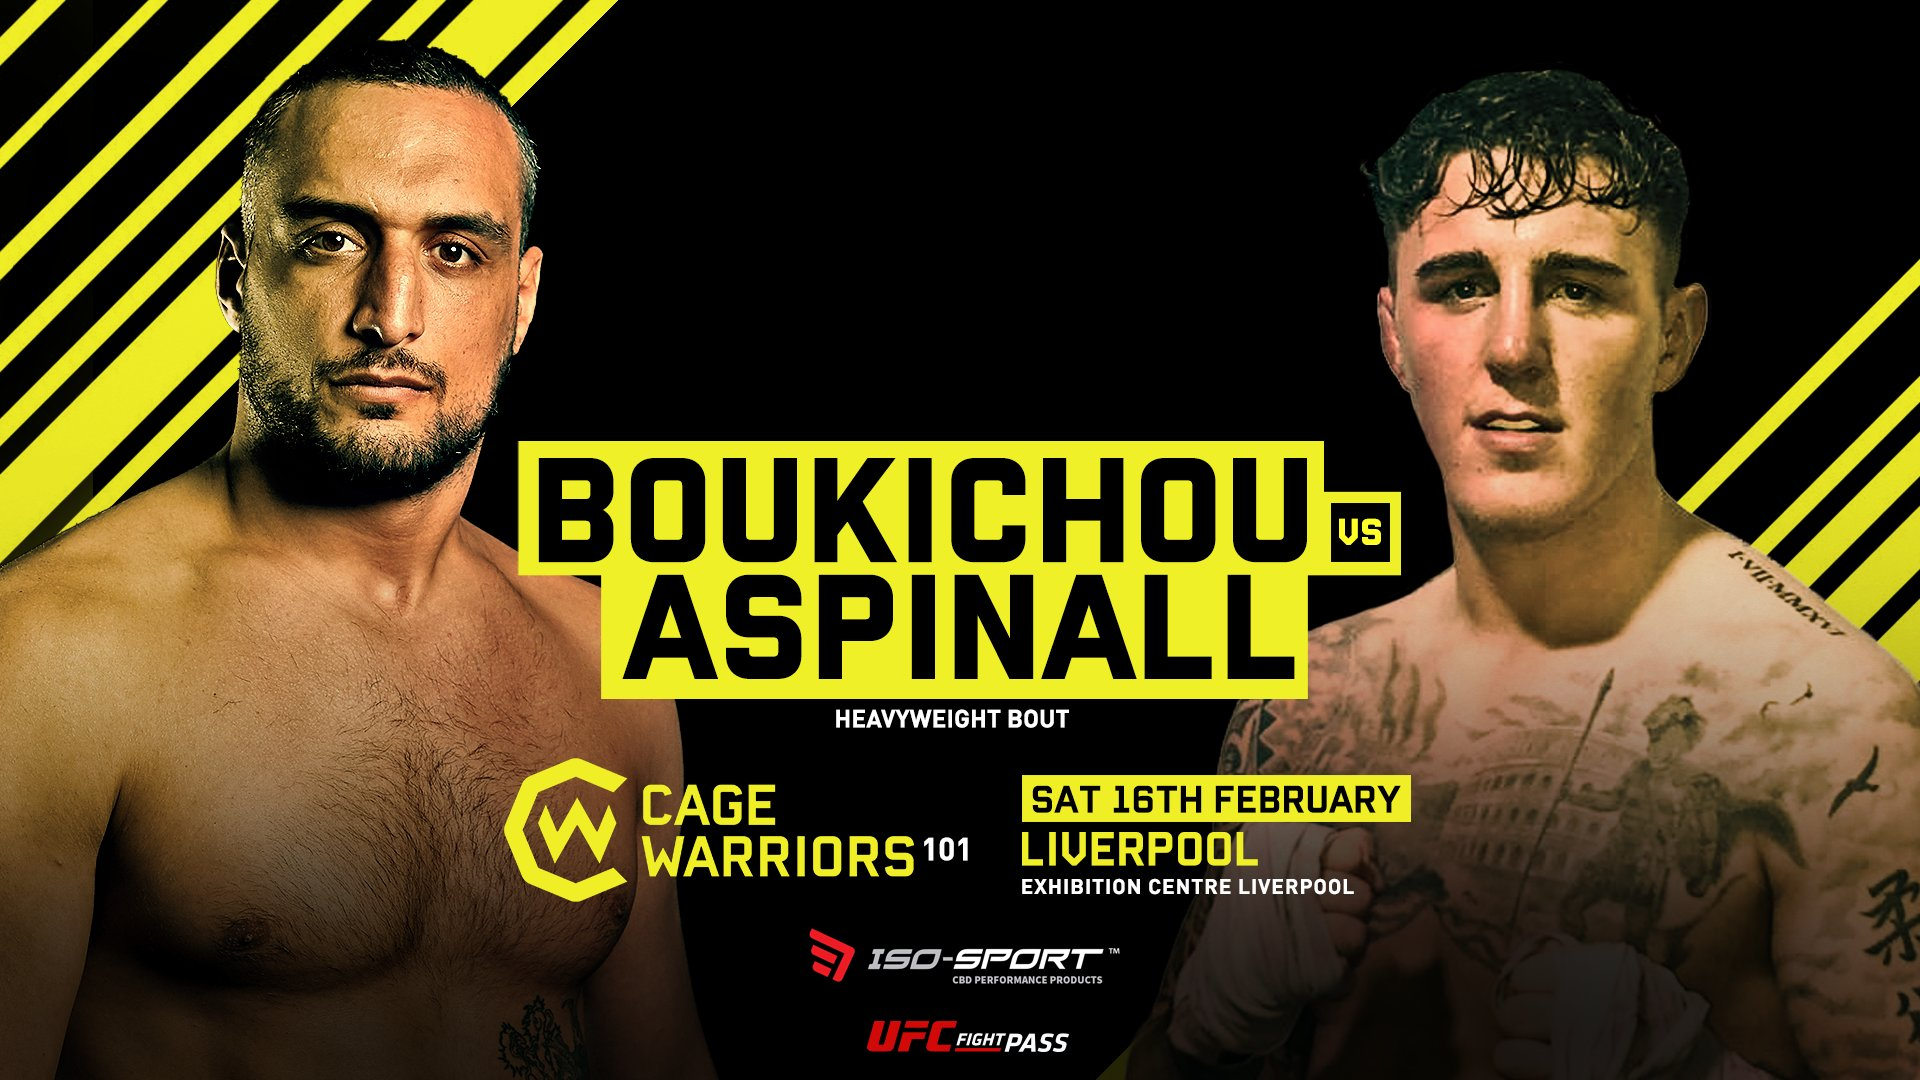 Cage Warriors 101 Main Event